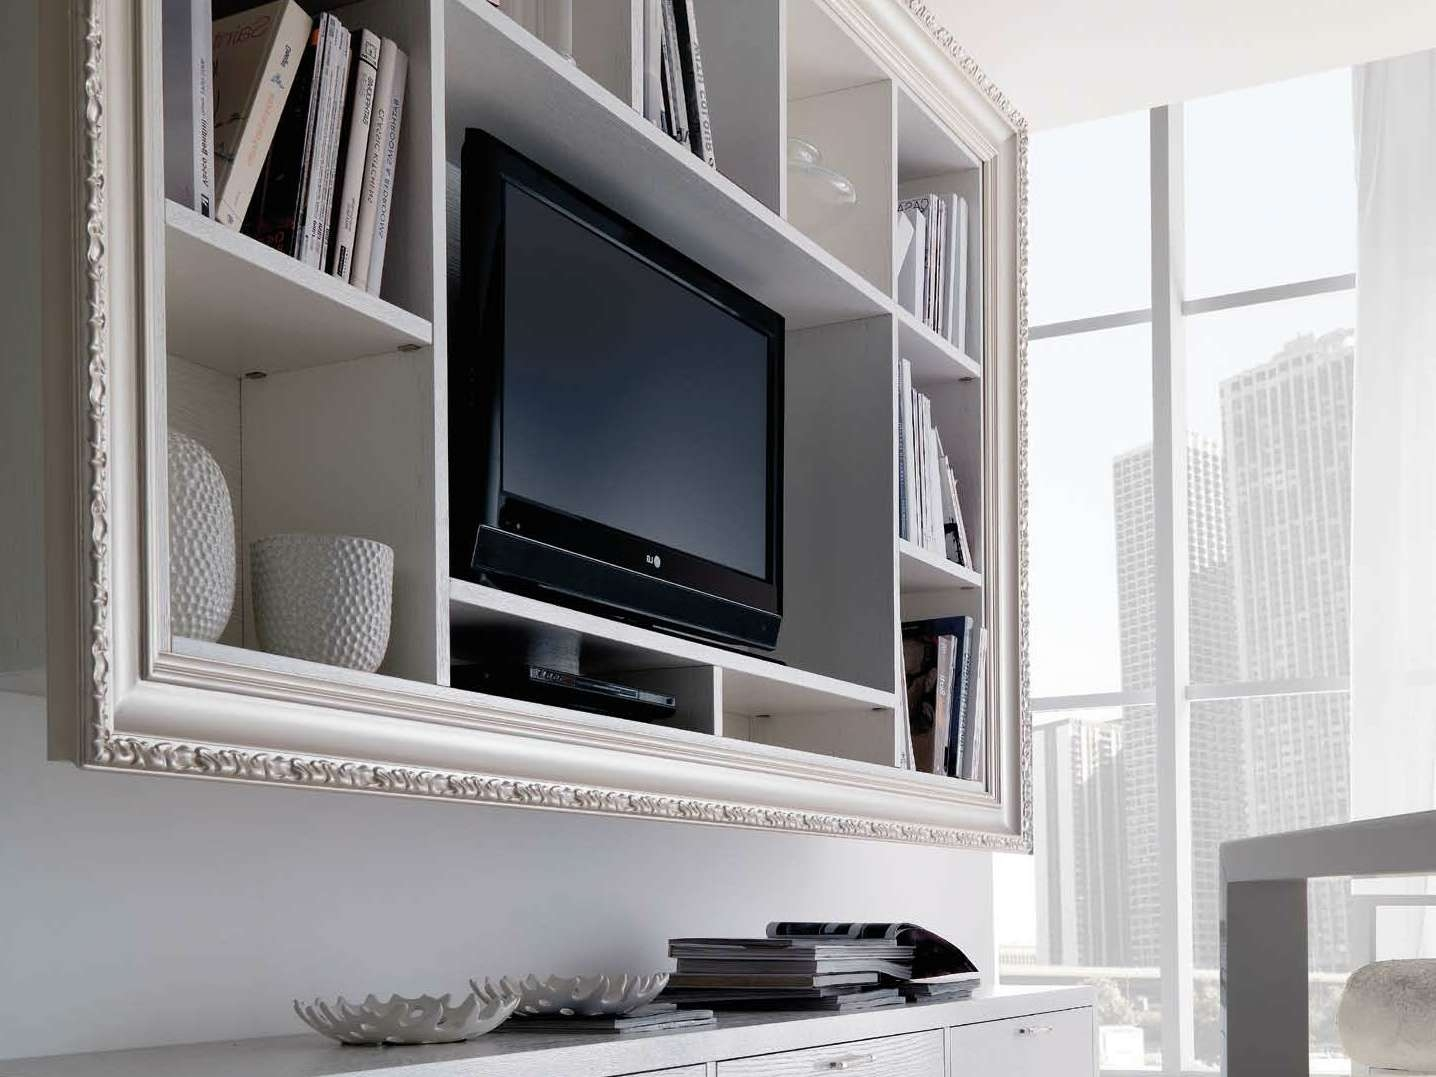 Decoration : Wall Mounted Tv Stands With Shelves 3 Wall Mount Tv Throughout Full Wall Tv Cabinets (View 7 of 20)